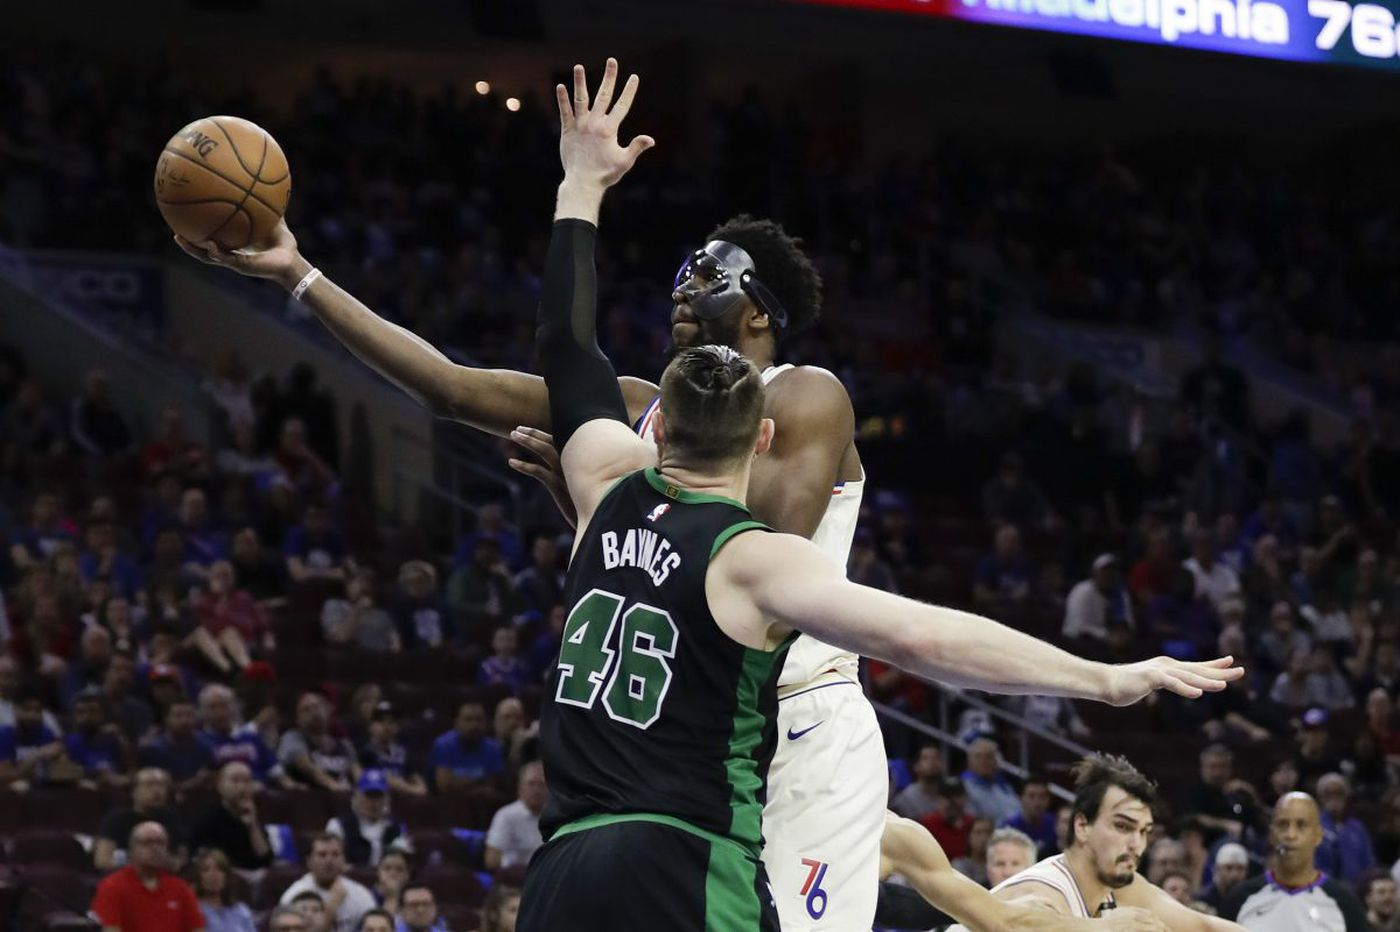 Joel Embiid's dunk on Aron Baynes doesn't tell the whole story, Celtics say